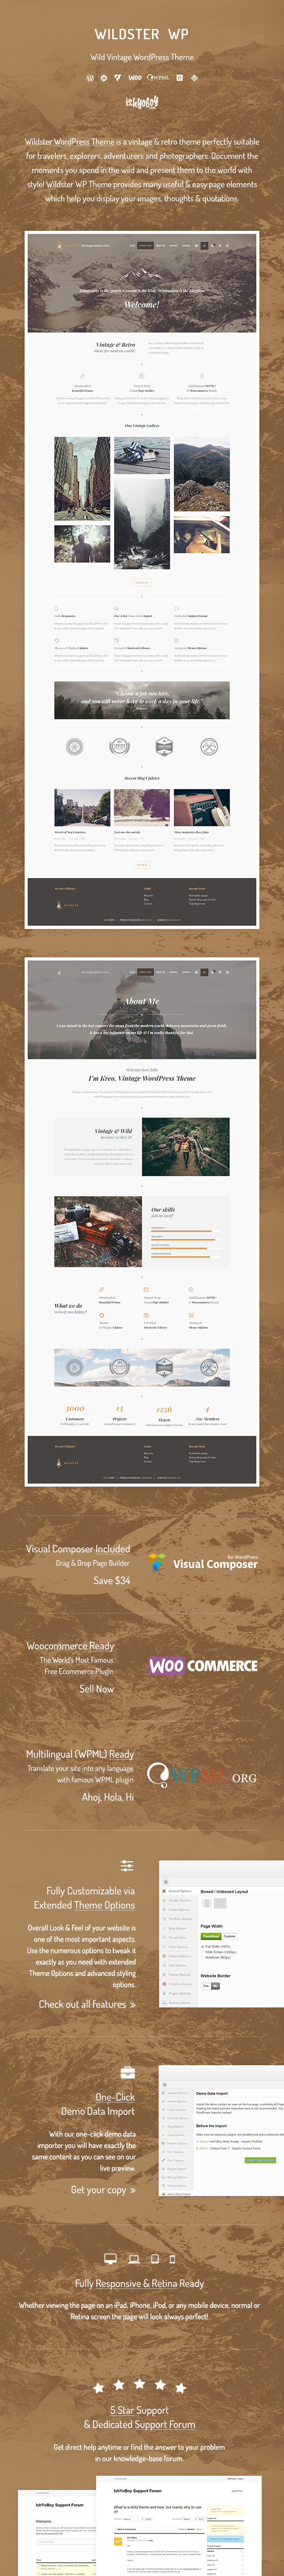 Wildster WP - Wild Vintage WordPress Theme